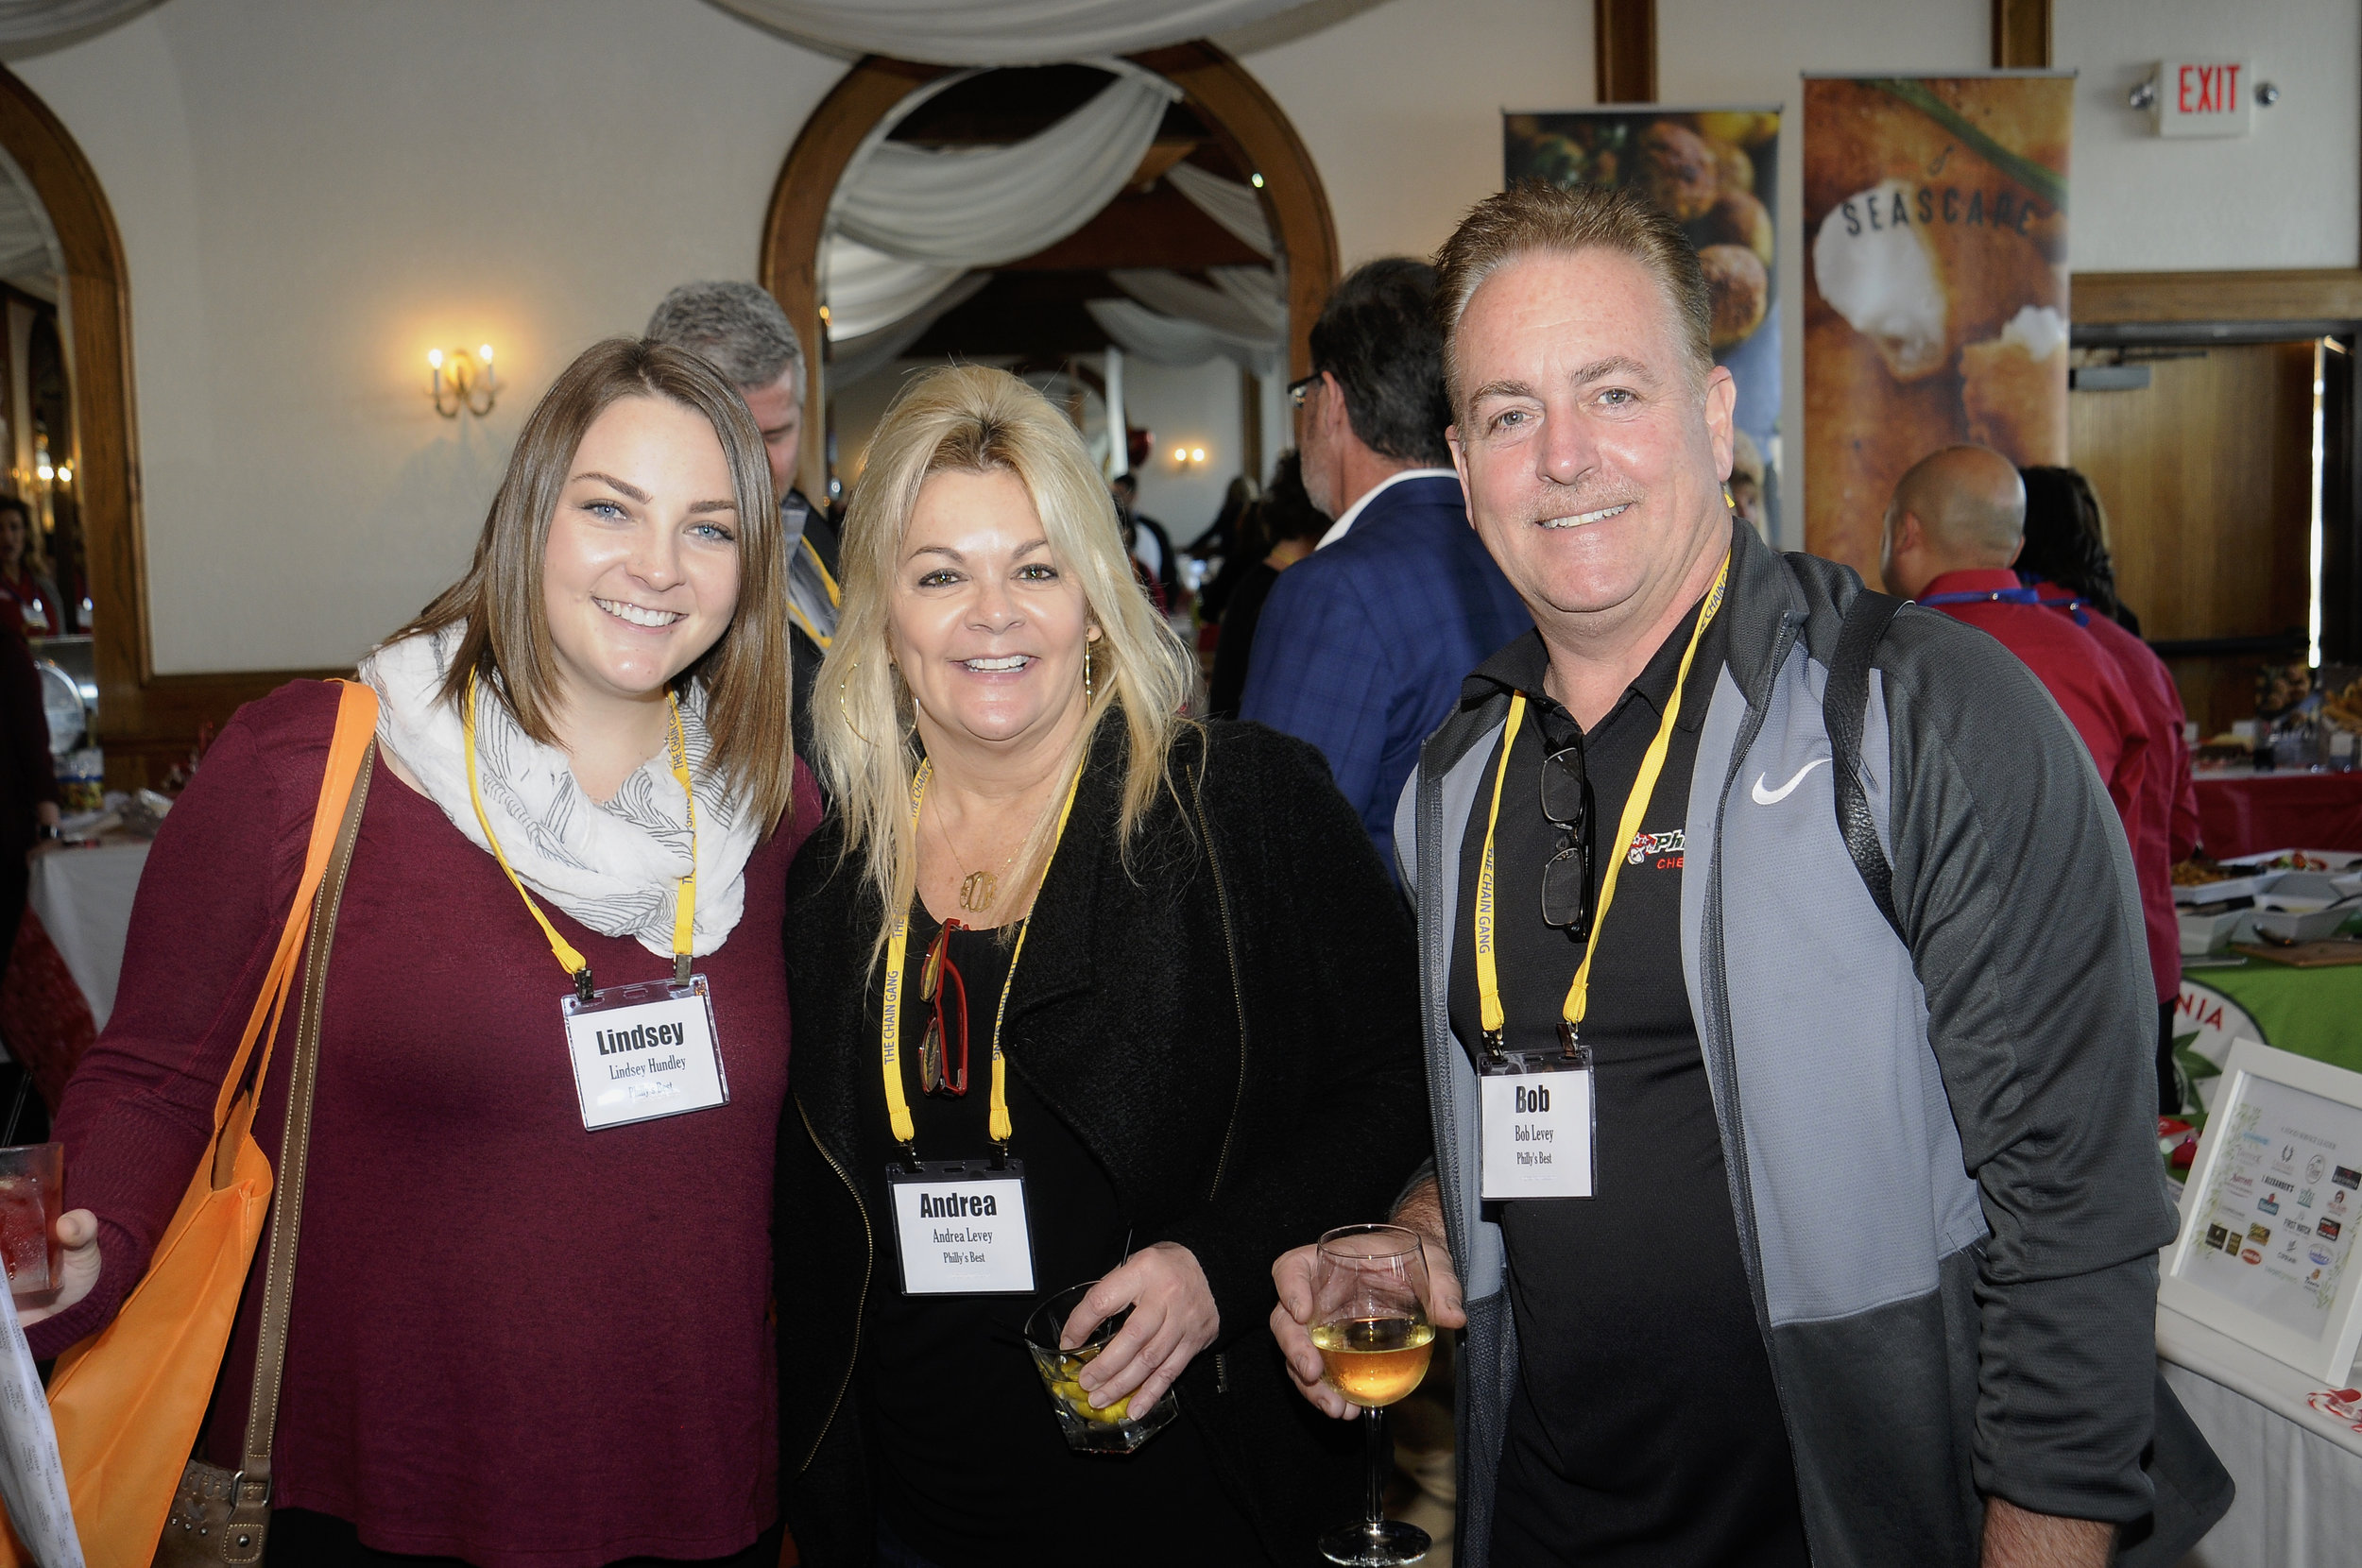 063 Market Vision Event at The Reef in Long Beach 02-05-19.jpg